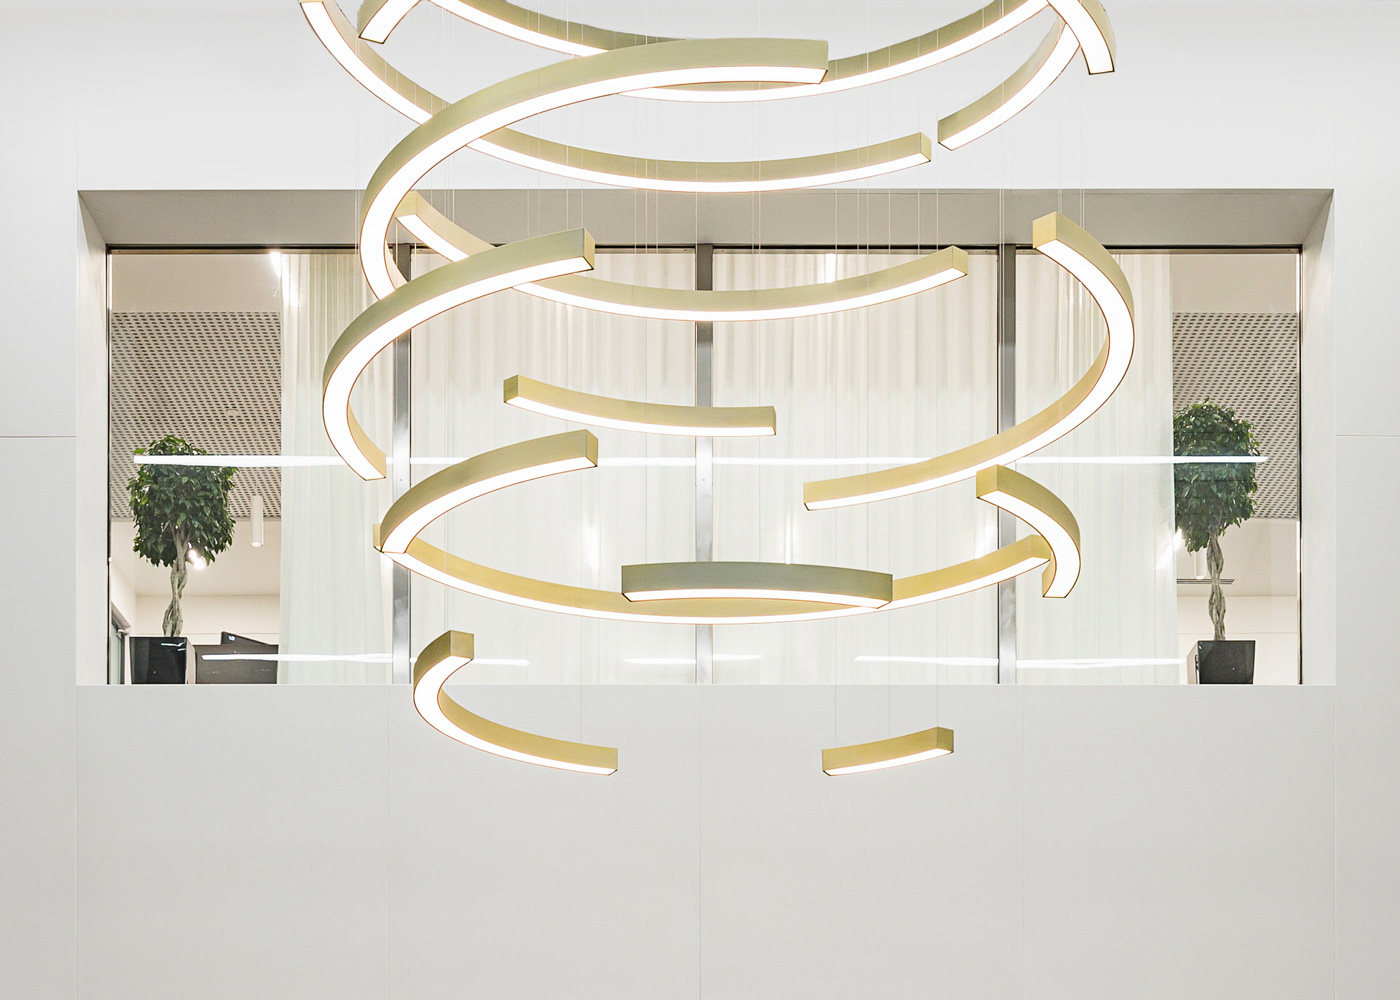 Flurry lighting installation by LUUM